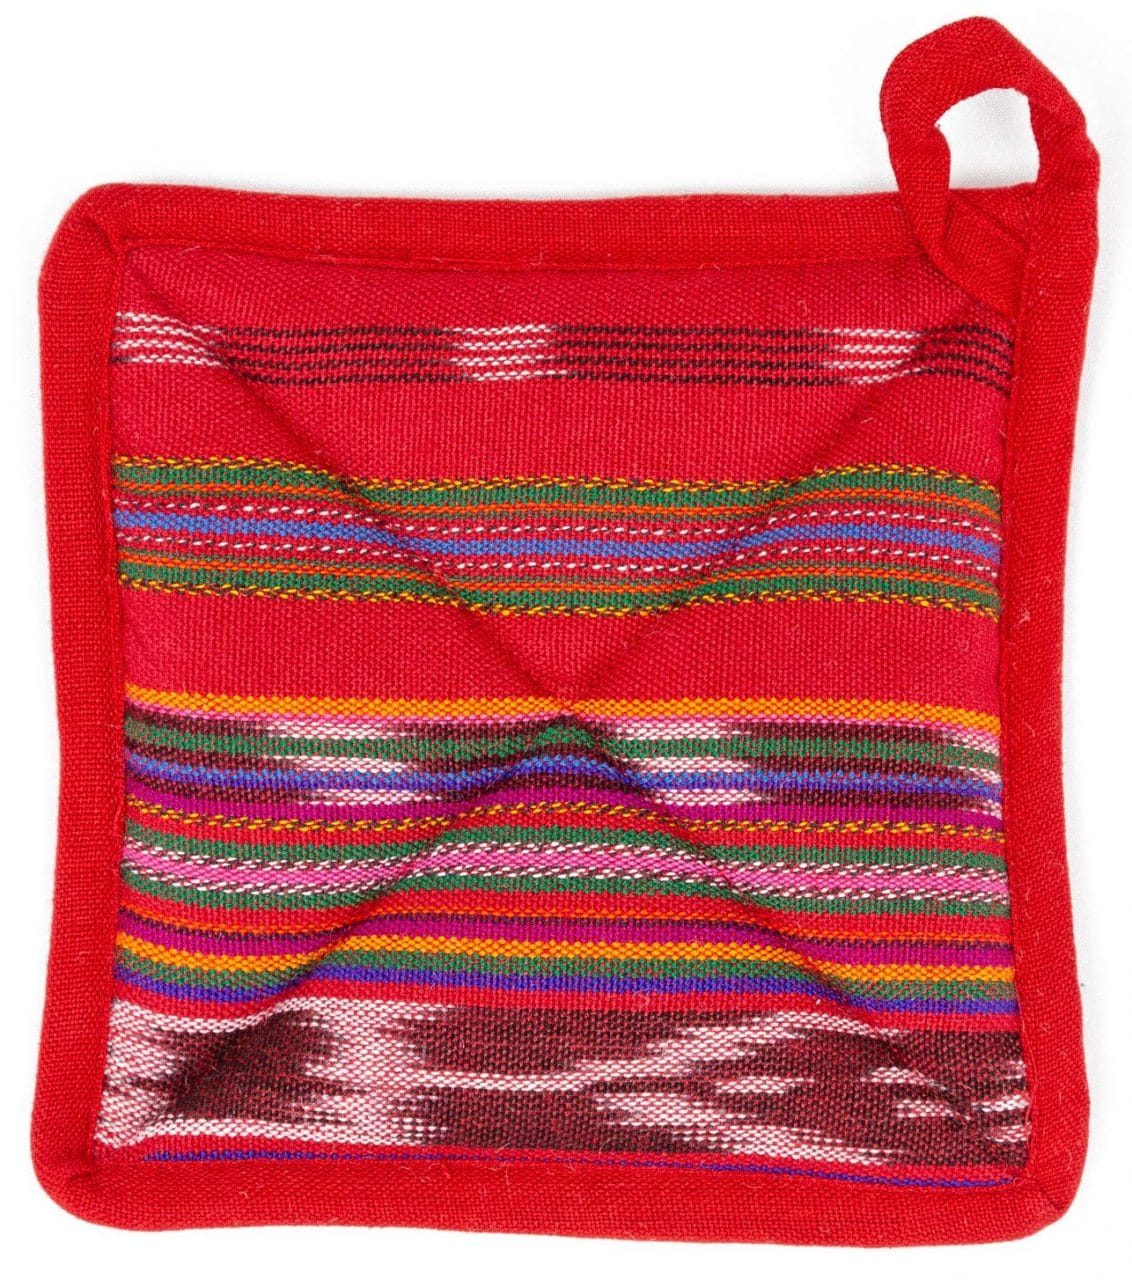 Square Pot Holder - A Variety of Colors